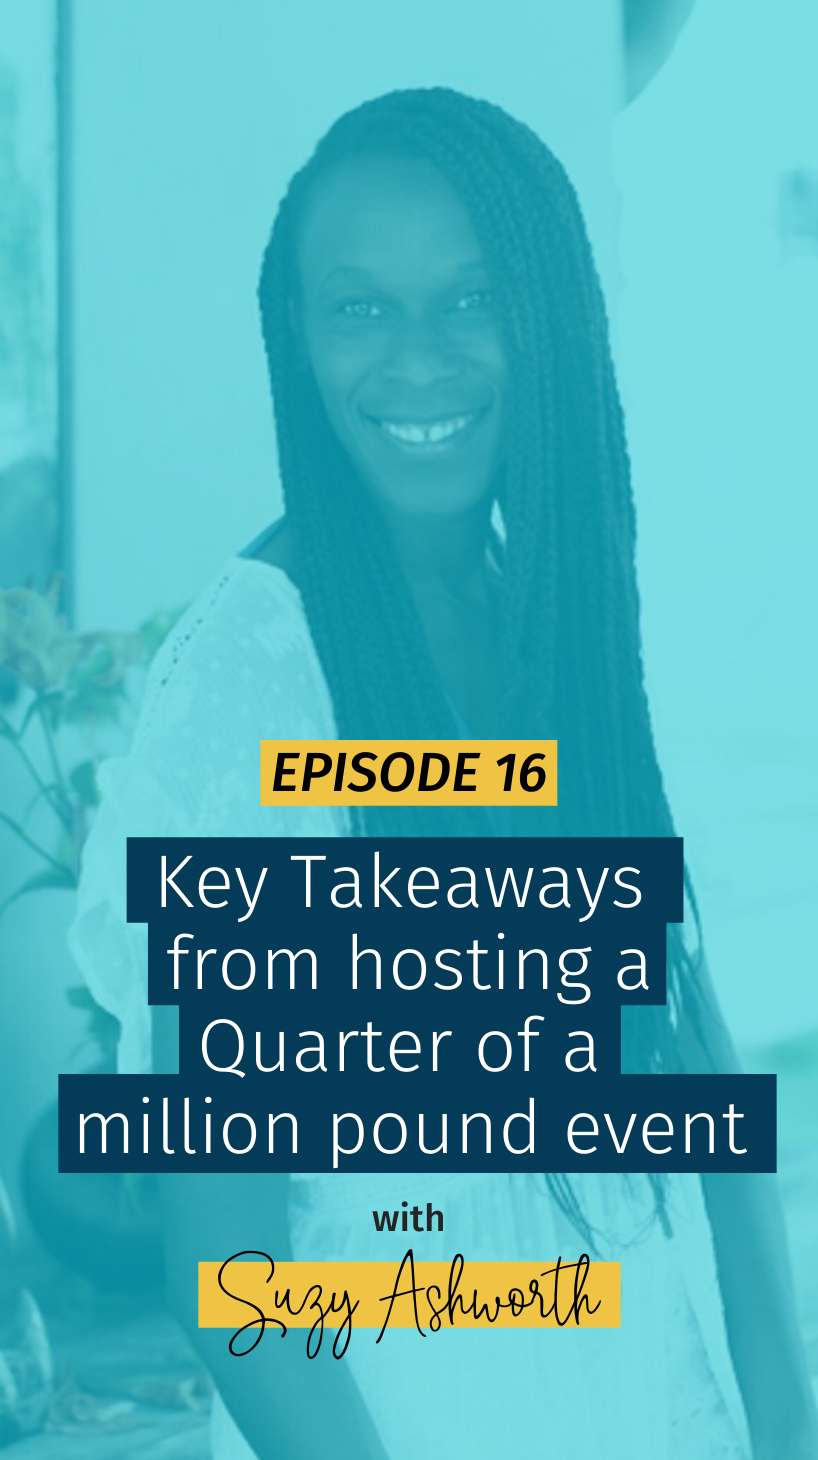 016 Key Takeaways from hosting a Quarter of a million pound event